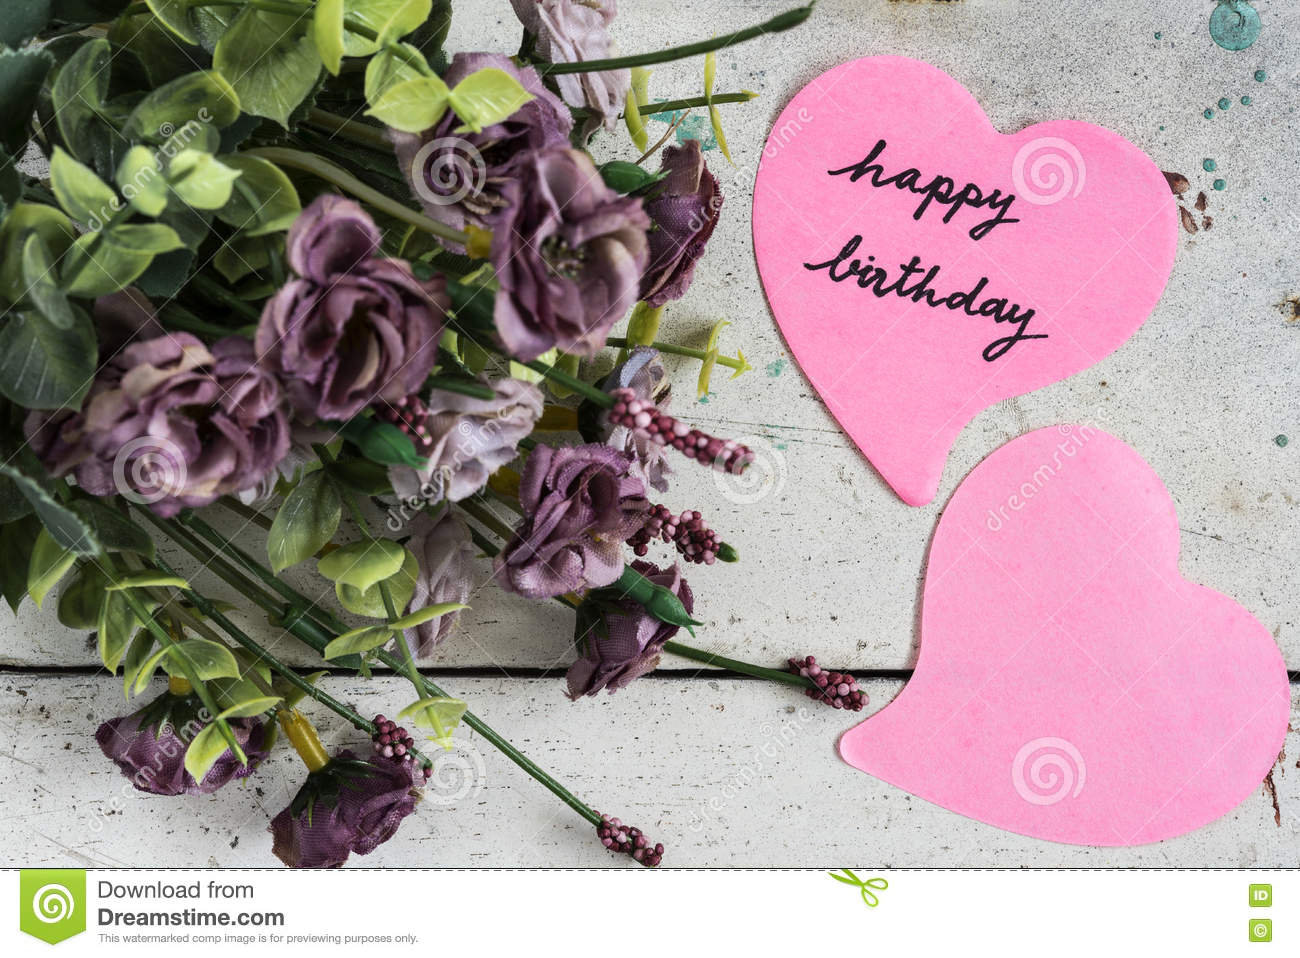 Happy birthday note in heart shape paper with purple flowers stock download happy birthday note in heart shape paper with purple flowers stock photo image of izmirmasajfo